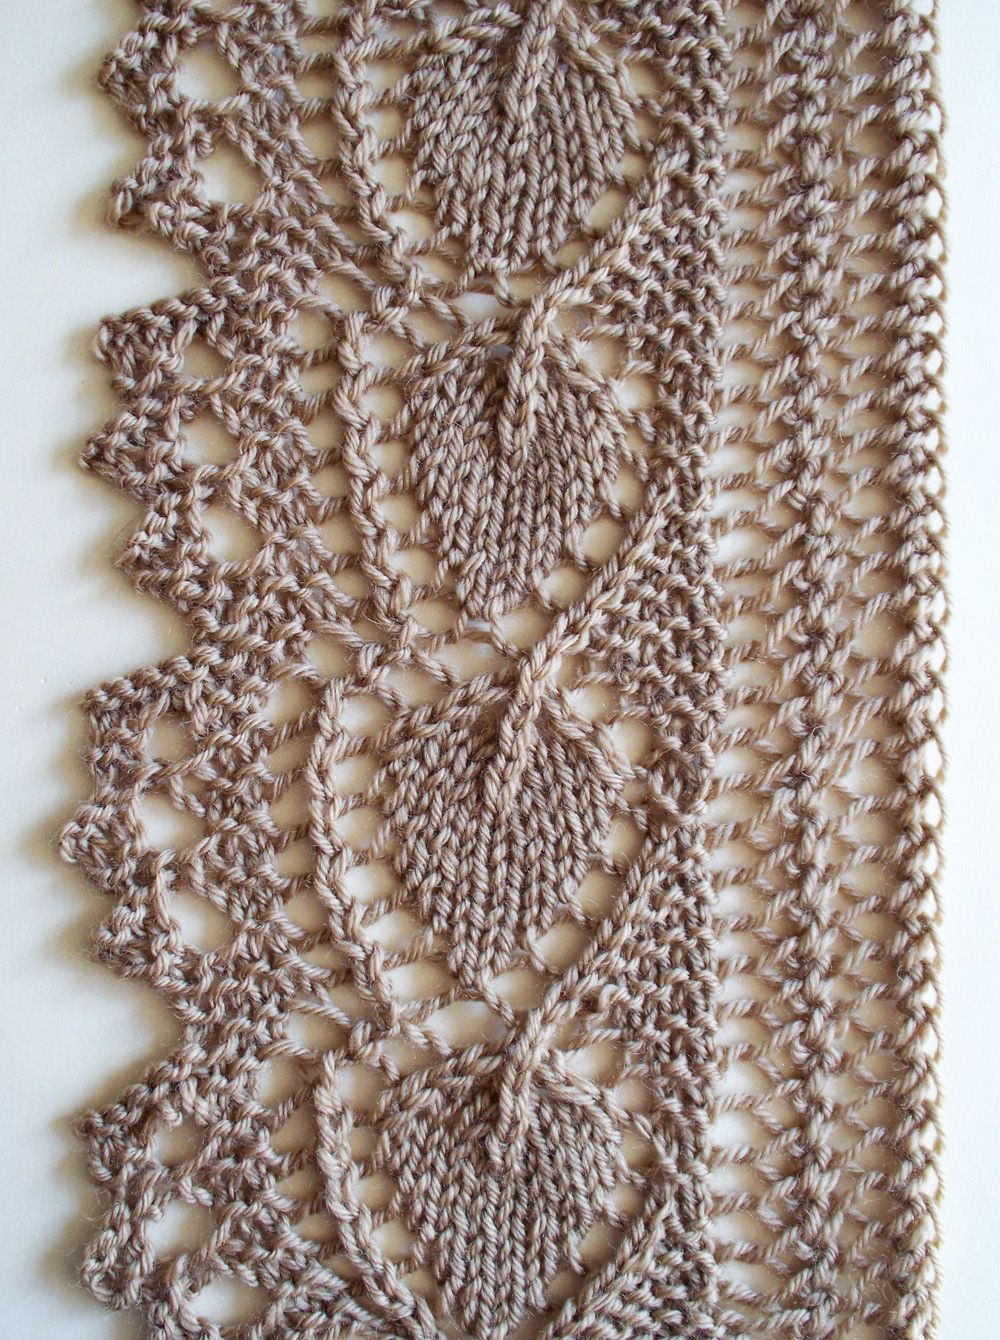 Click for full screen display diy knitting 3 pinterest click for full screen display leaf knitting patternlace bankloansurffo Choice Image